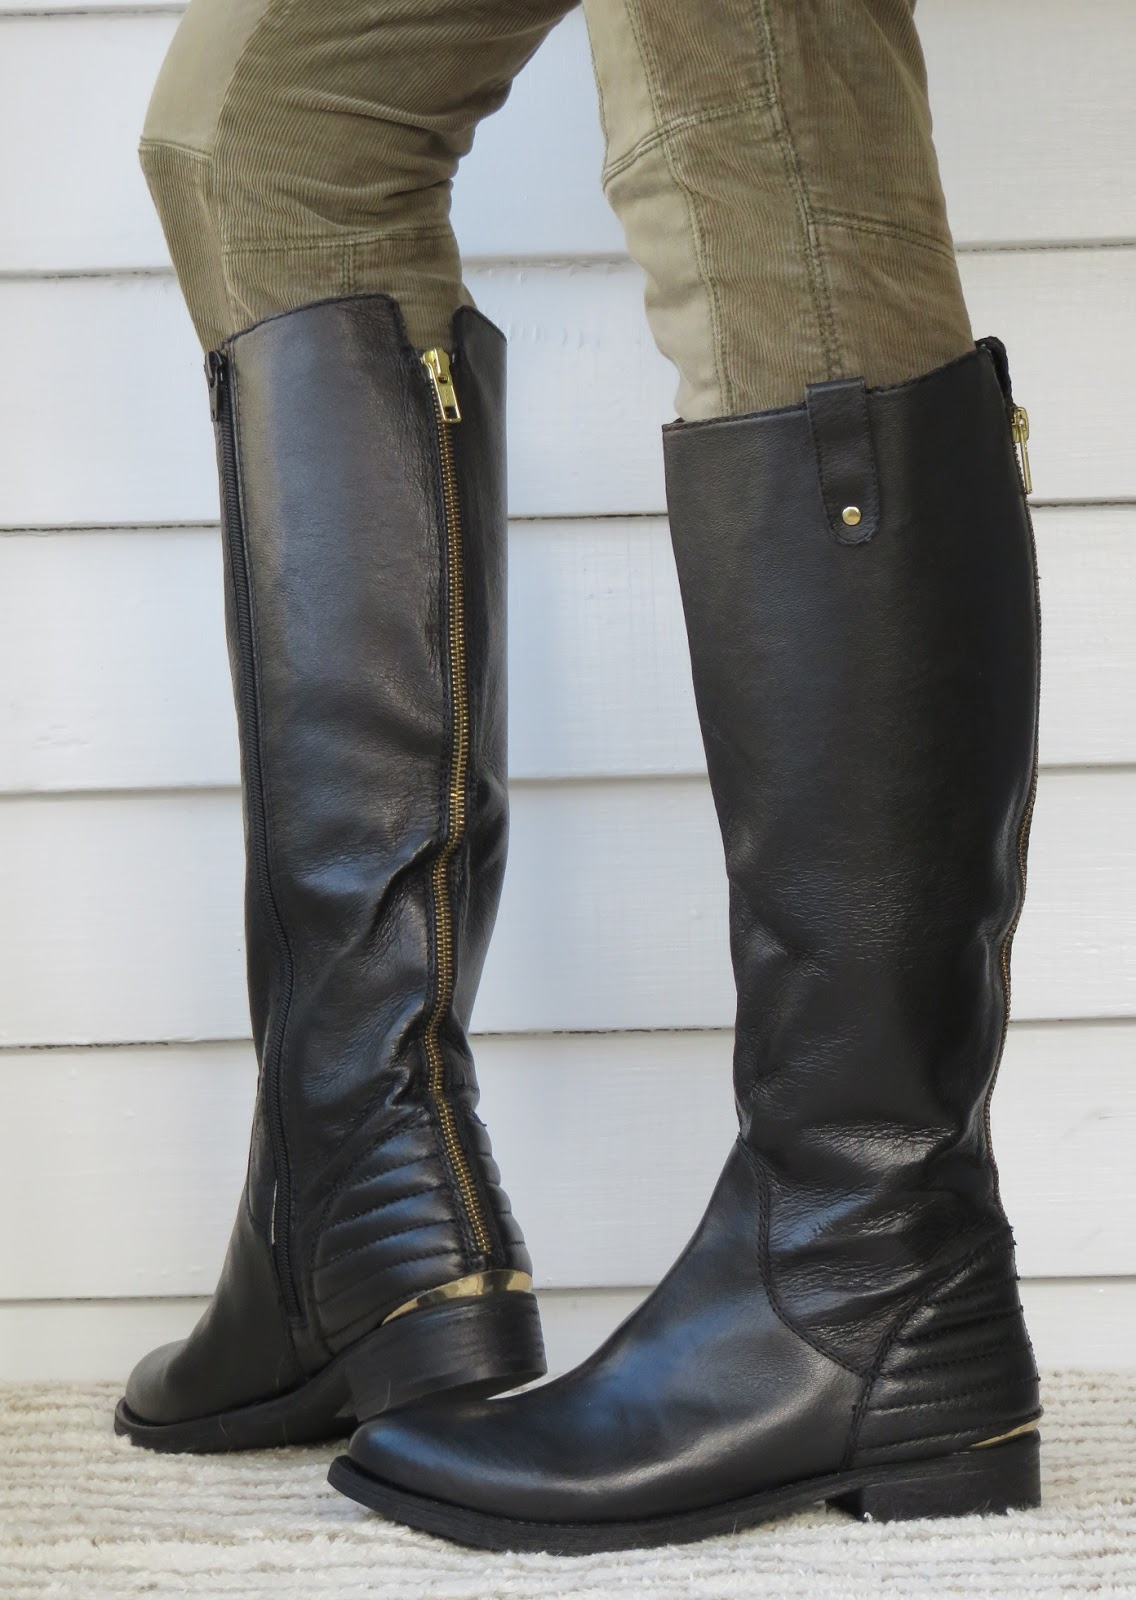 Howdy Slim Riding Boots For Thin Calves Steve Madden Arries